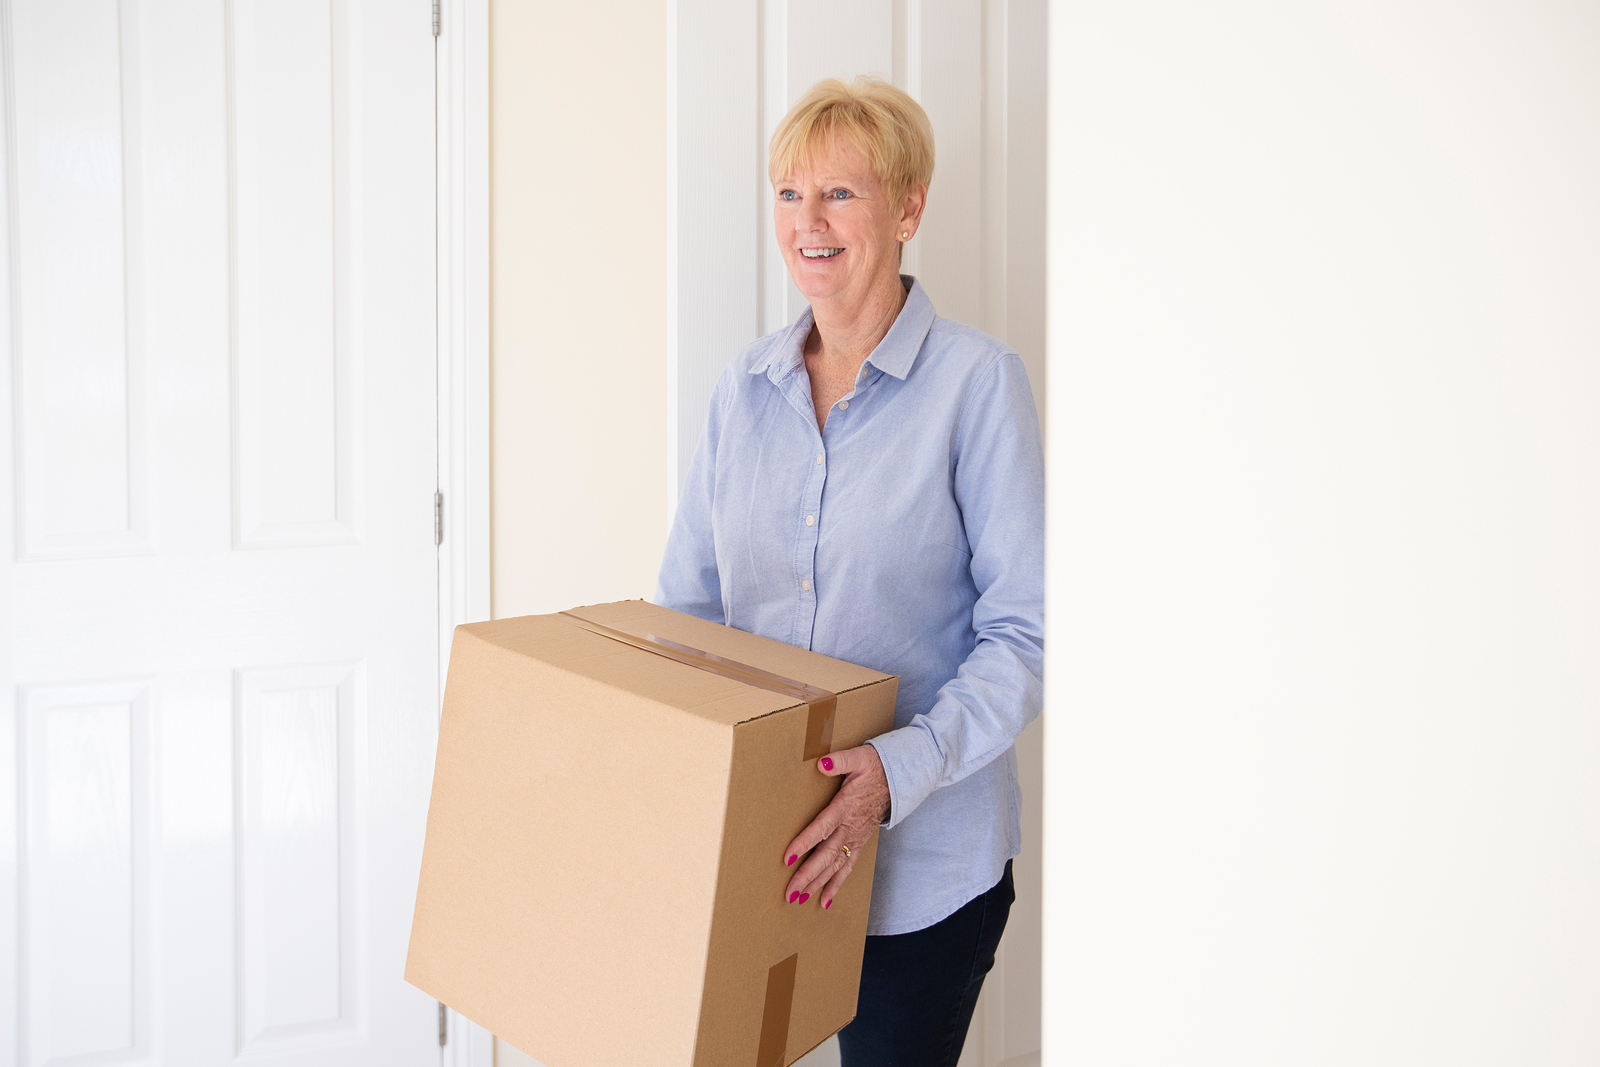 Senior woman carrying boxes into her new home after downsizing